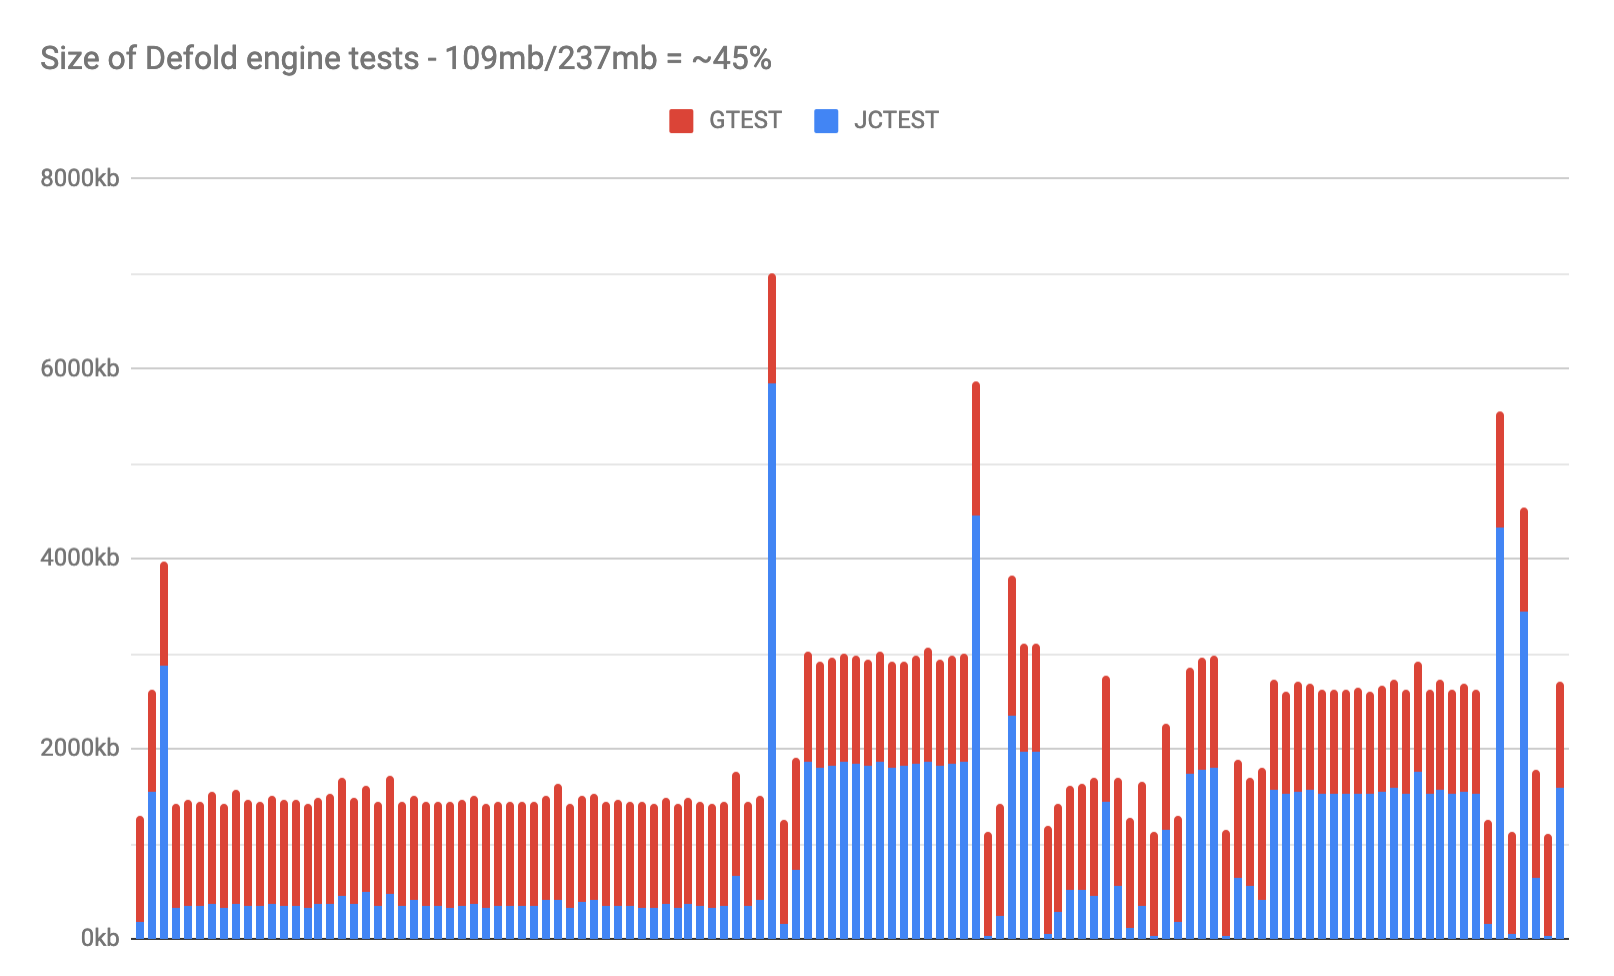 benchmark_enginetestsizes.png